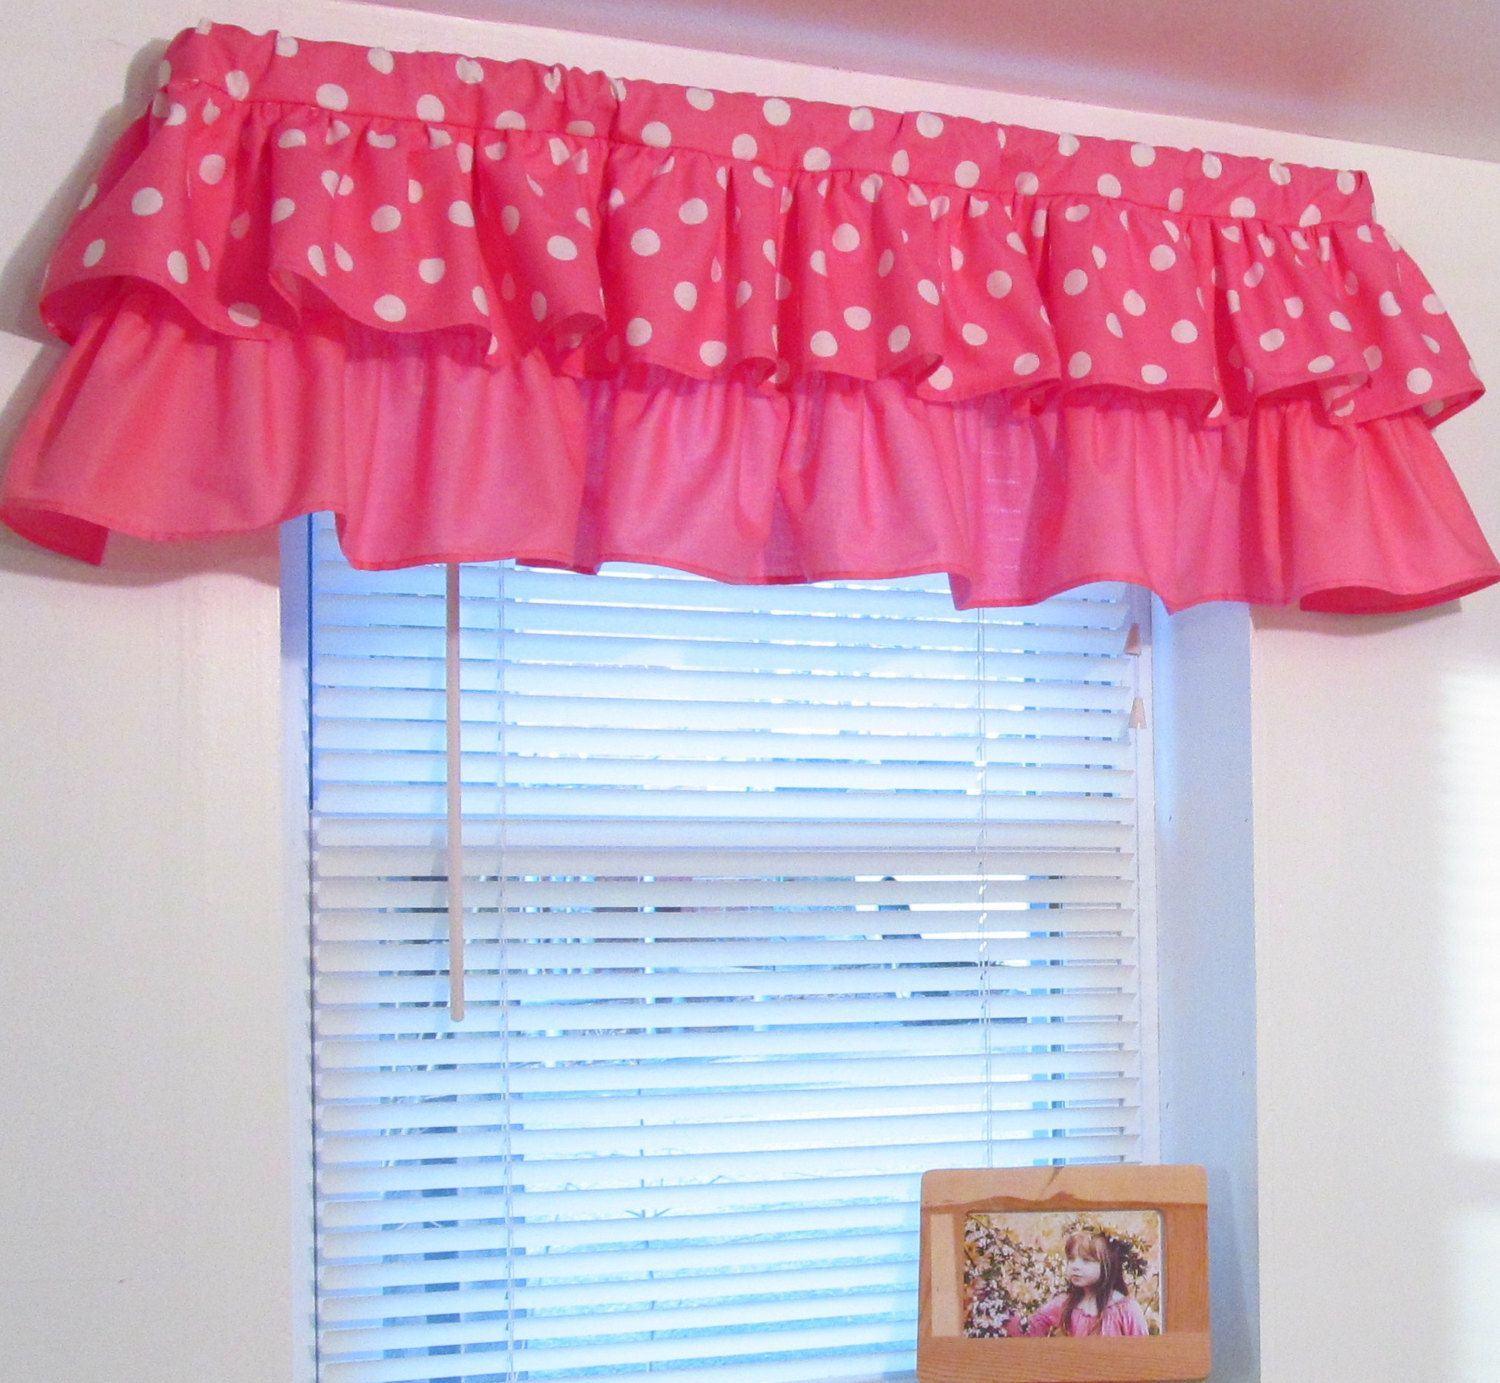 Double Ruffle with 2 colors chosen from bedding colors Can t